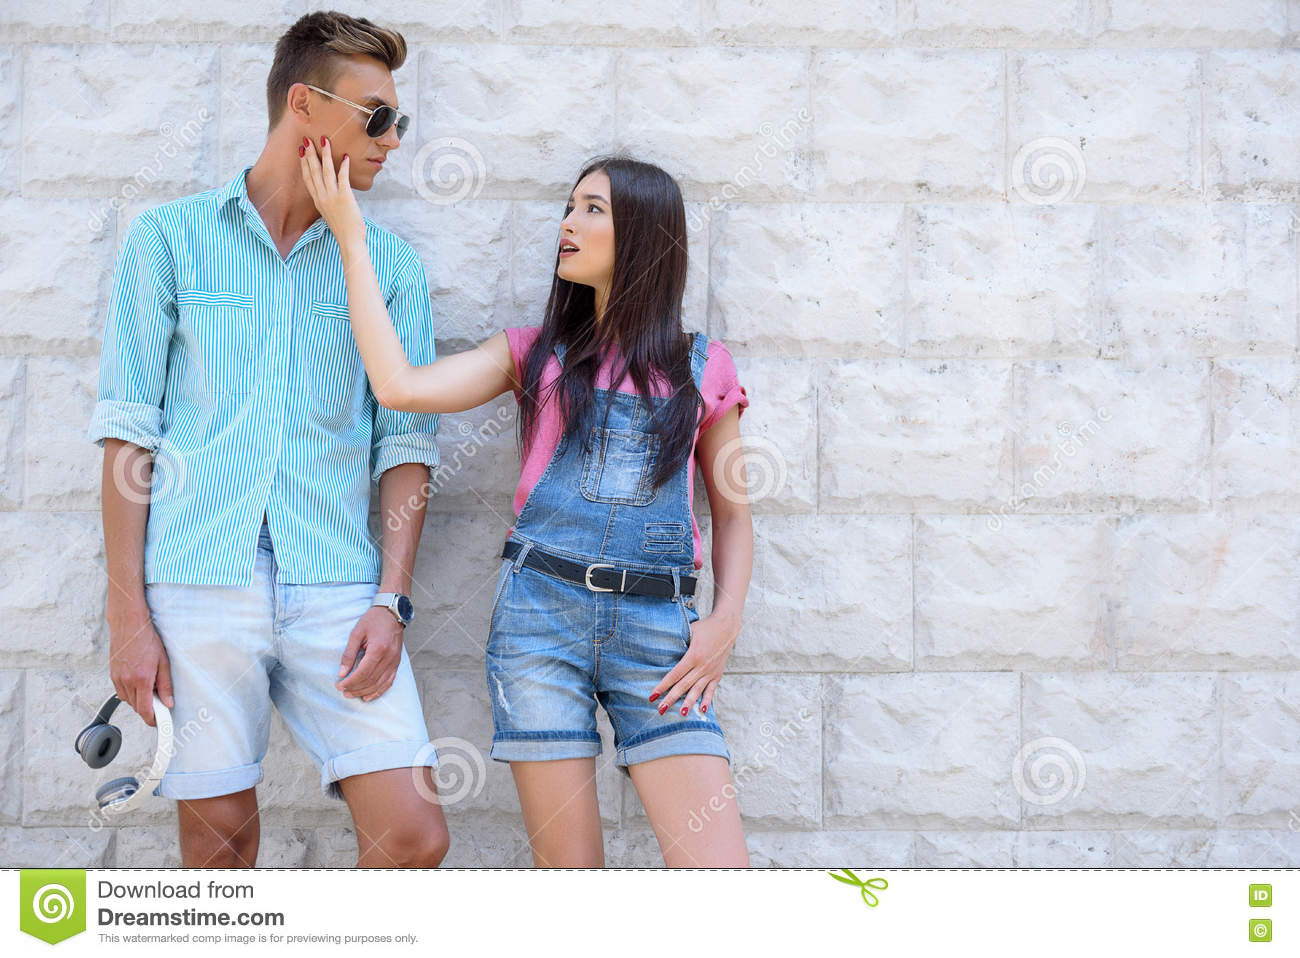 Pretty loving couple dating outdoors